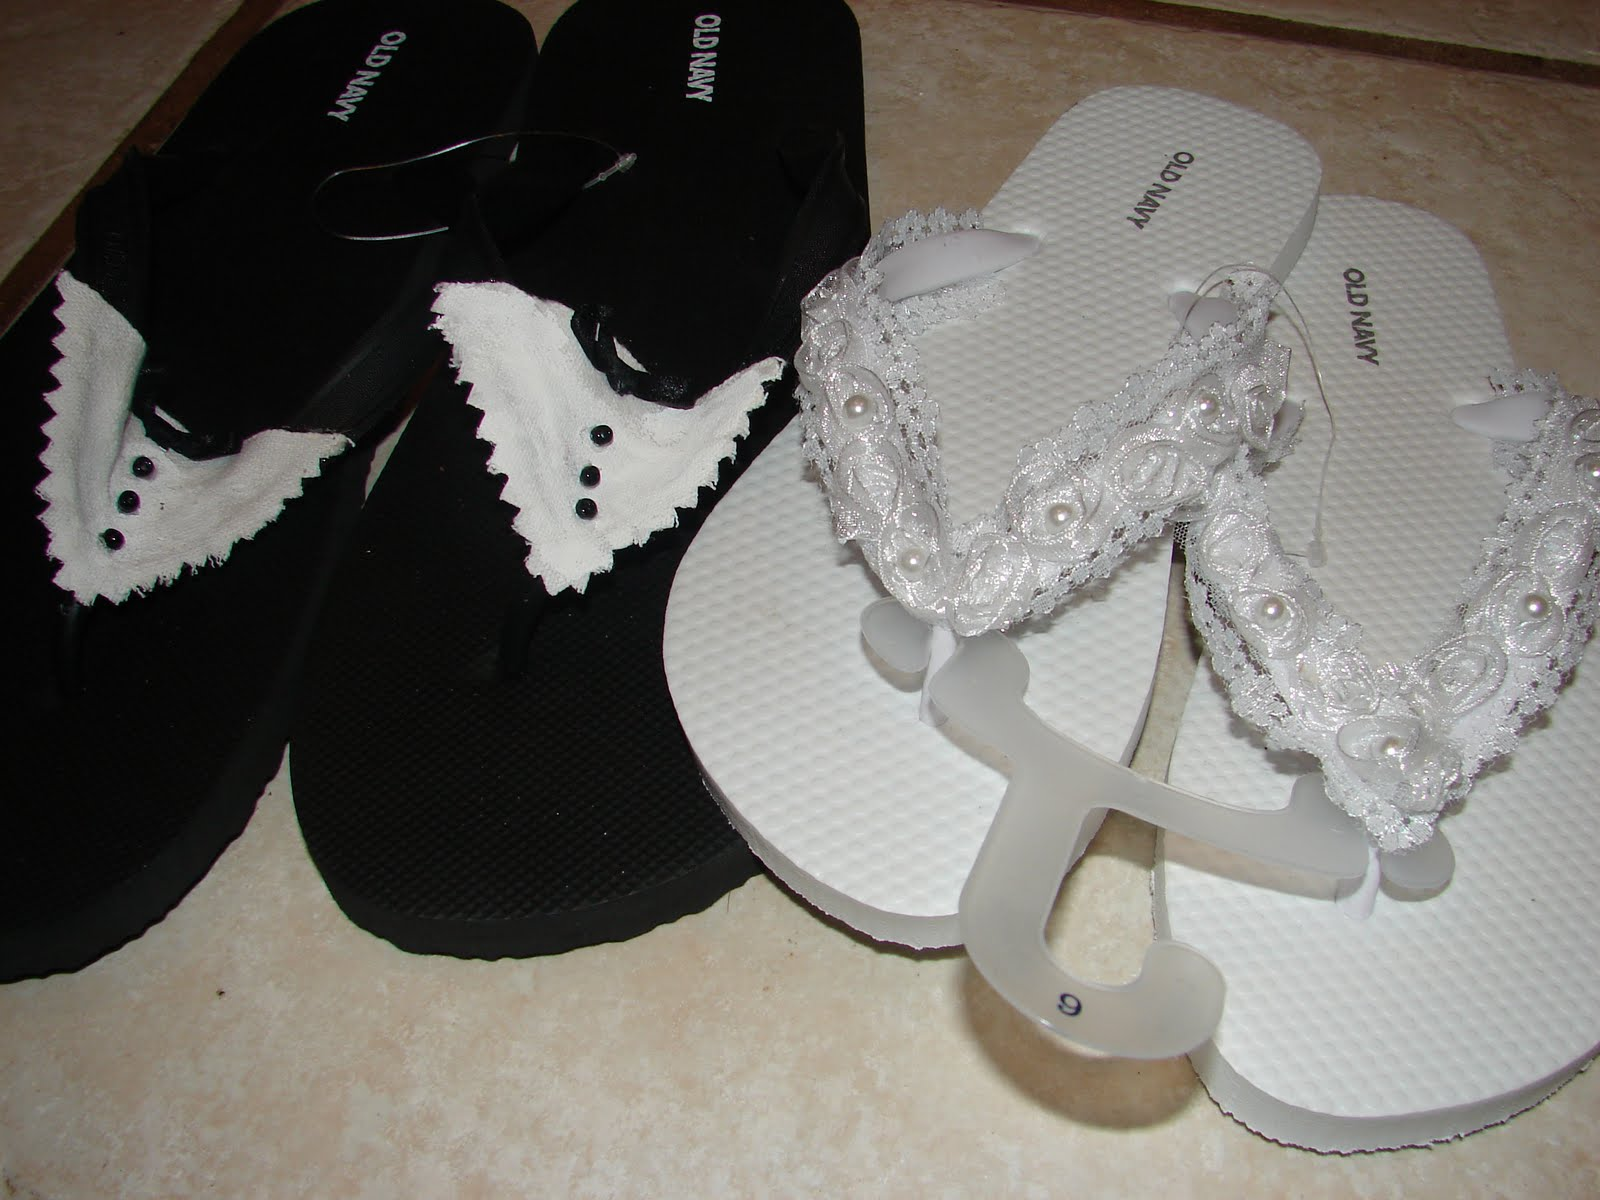 c84950219ec9 Home on the Range Exchange  Bridal Flip-Flops